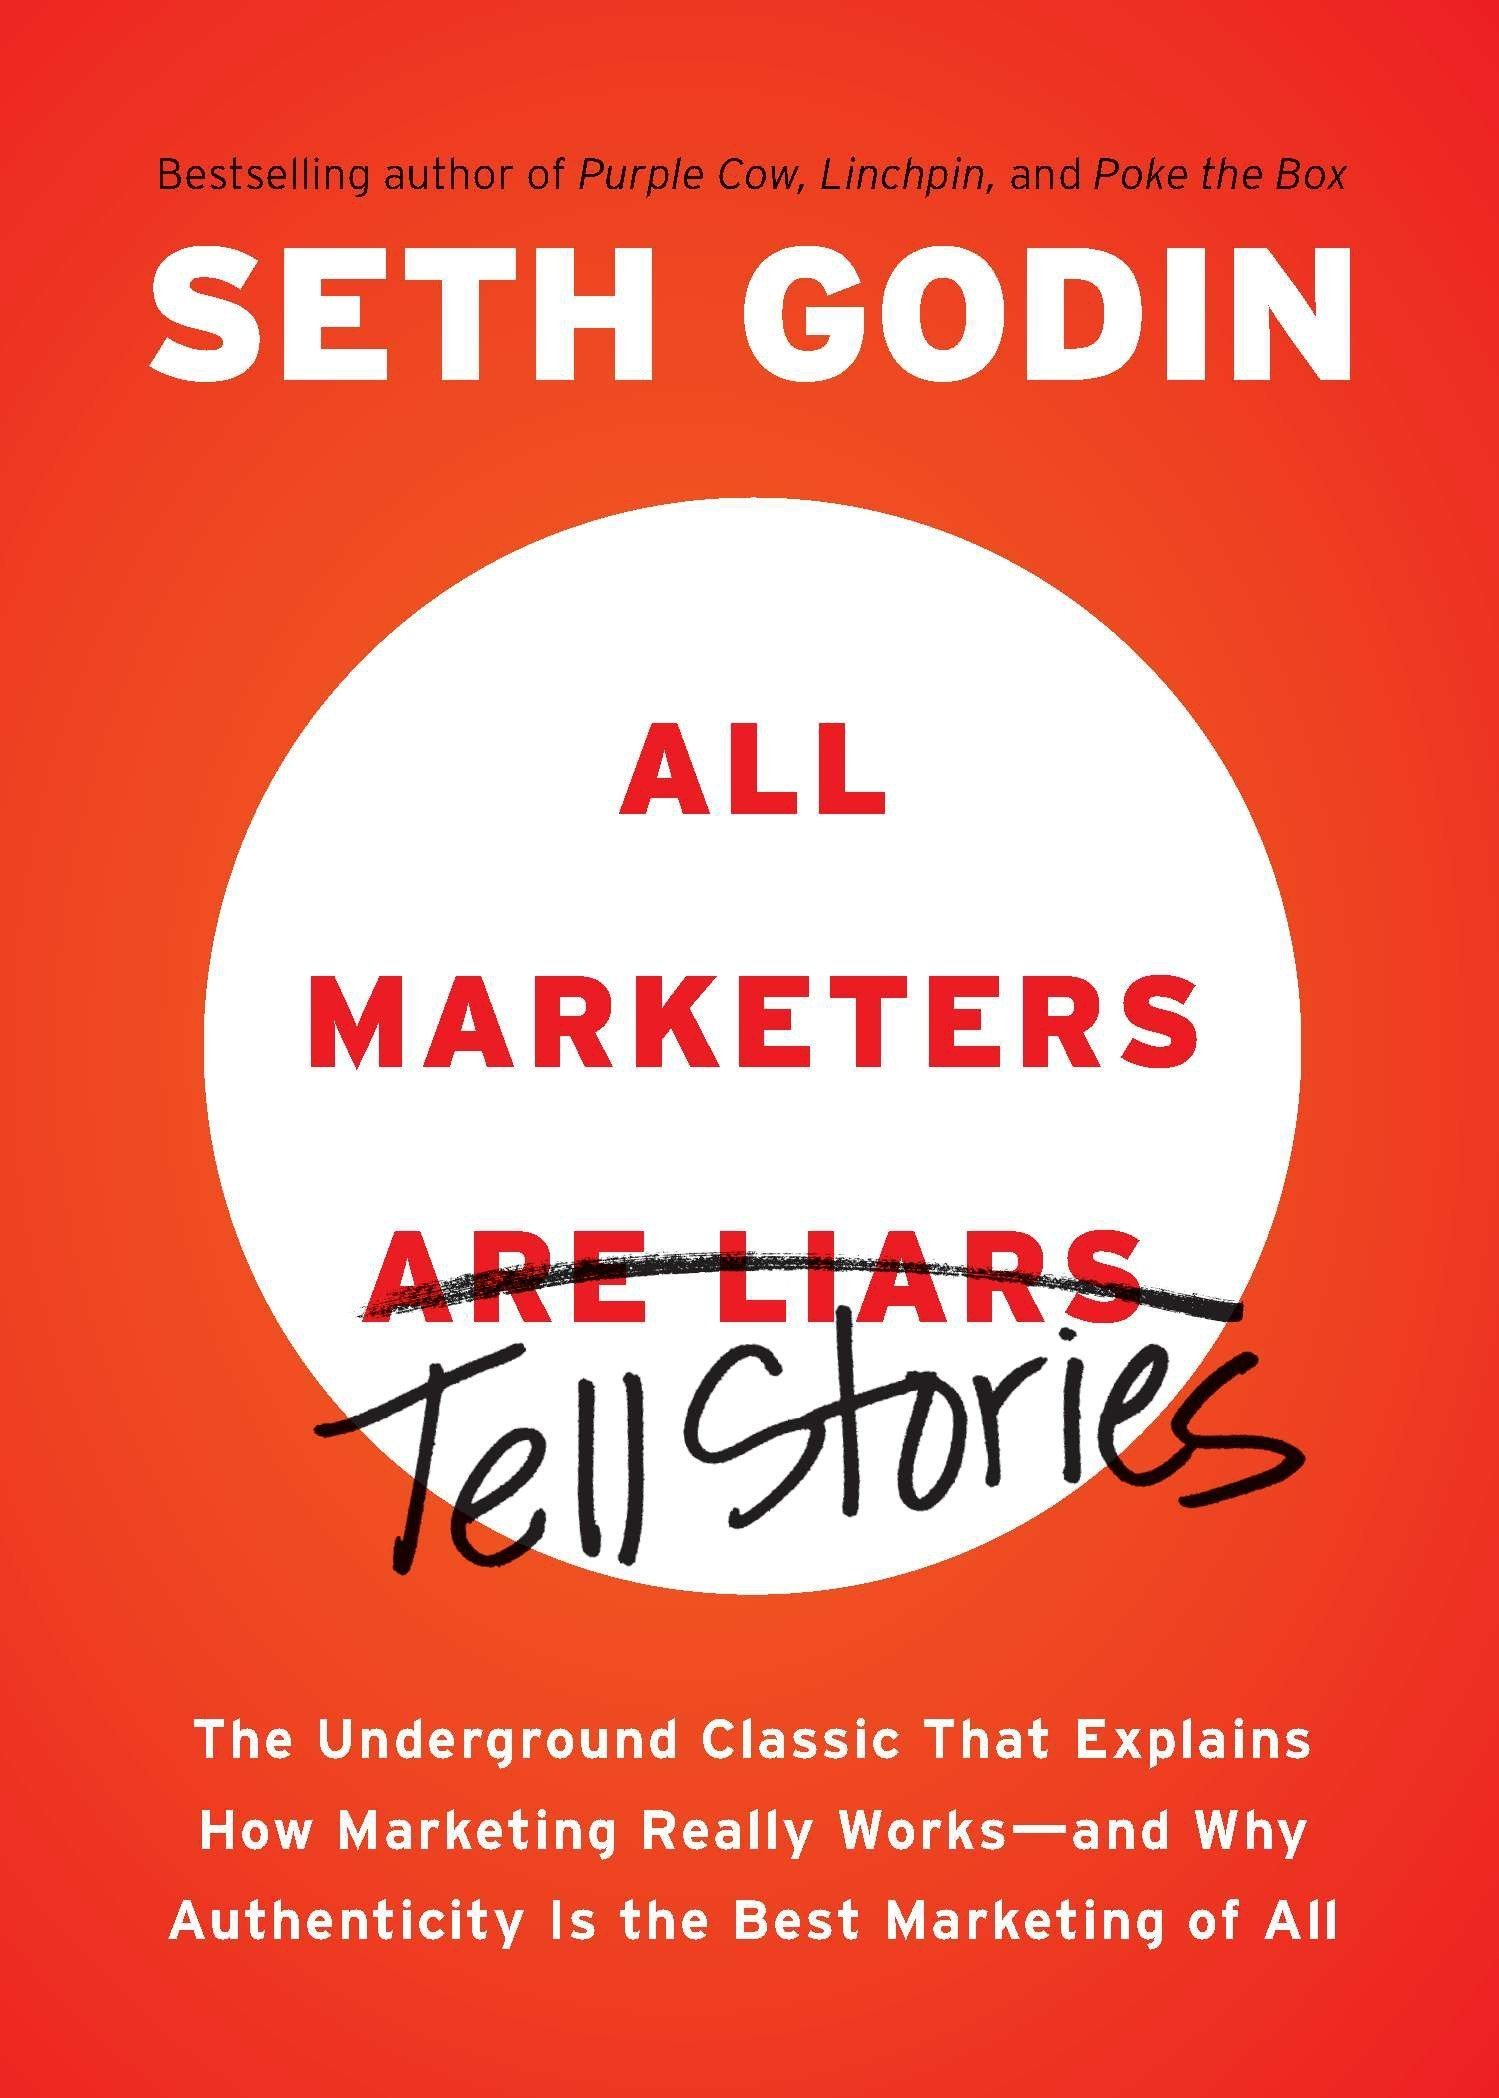 Book Cover for All Marketers Tell Stories by Seth Godin